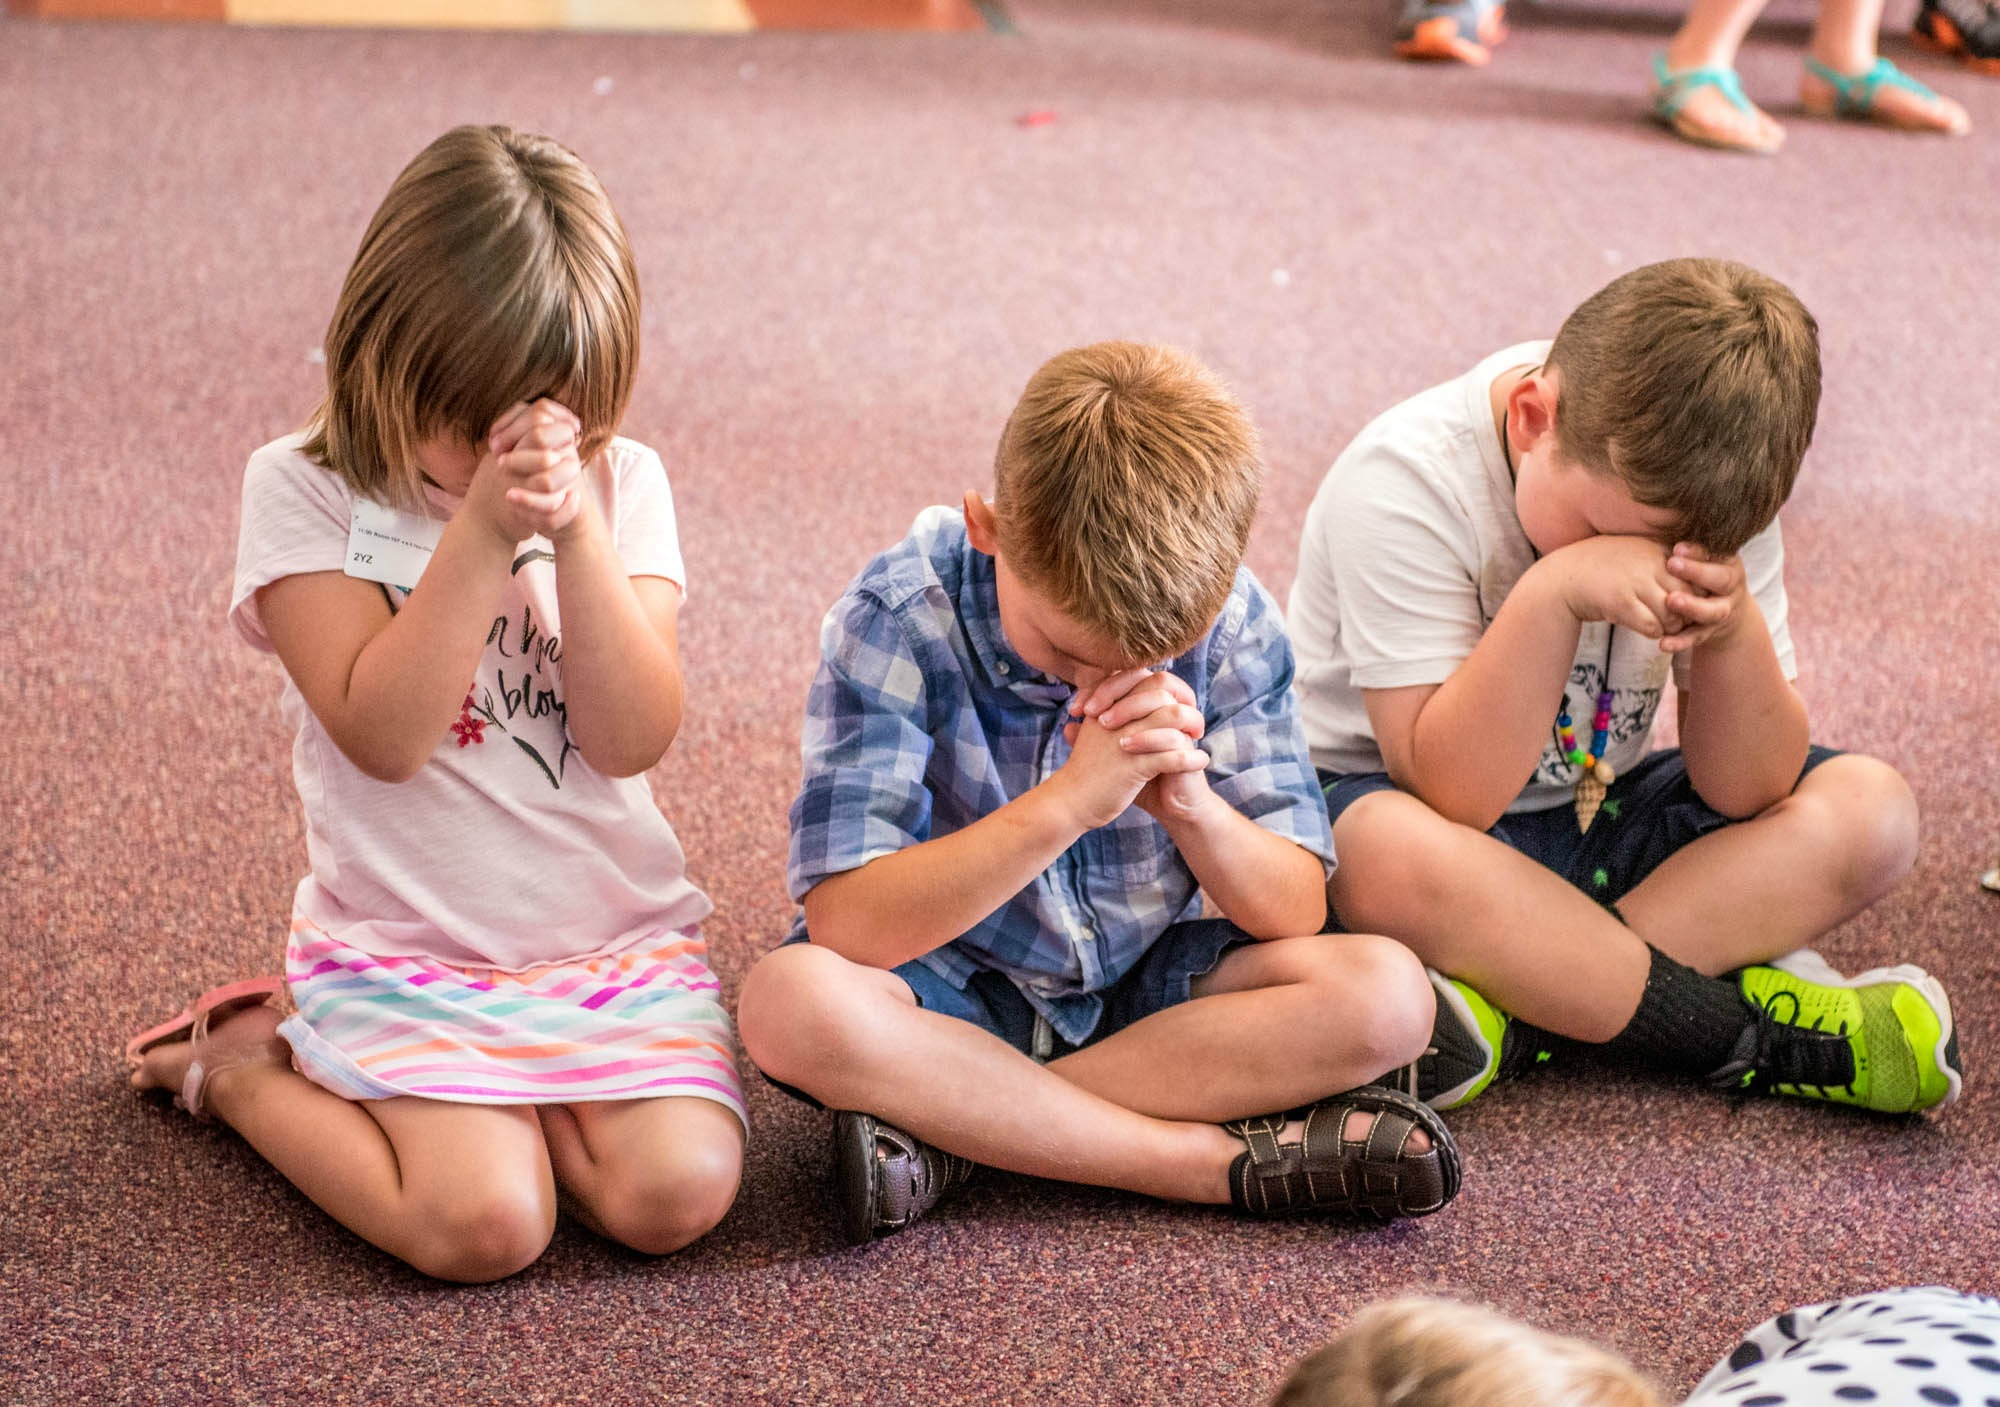 Preschool (ages 3-5) - Preschool consists of children ages 3-5. We value active play where the Bible is taught through engaging stories, activities, and fun worship songs with motions and movement.